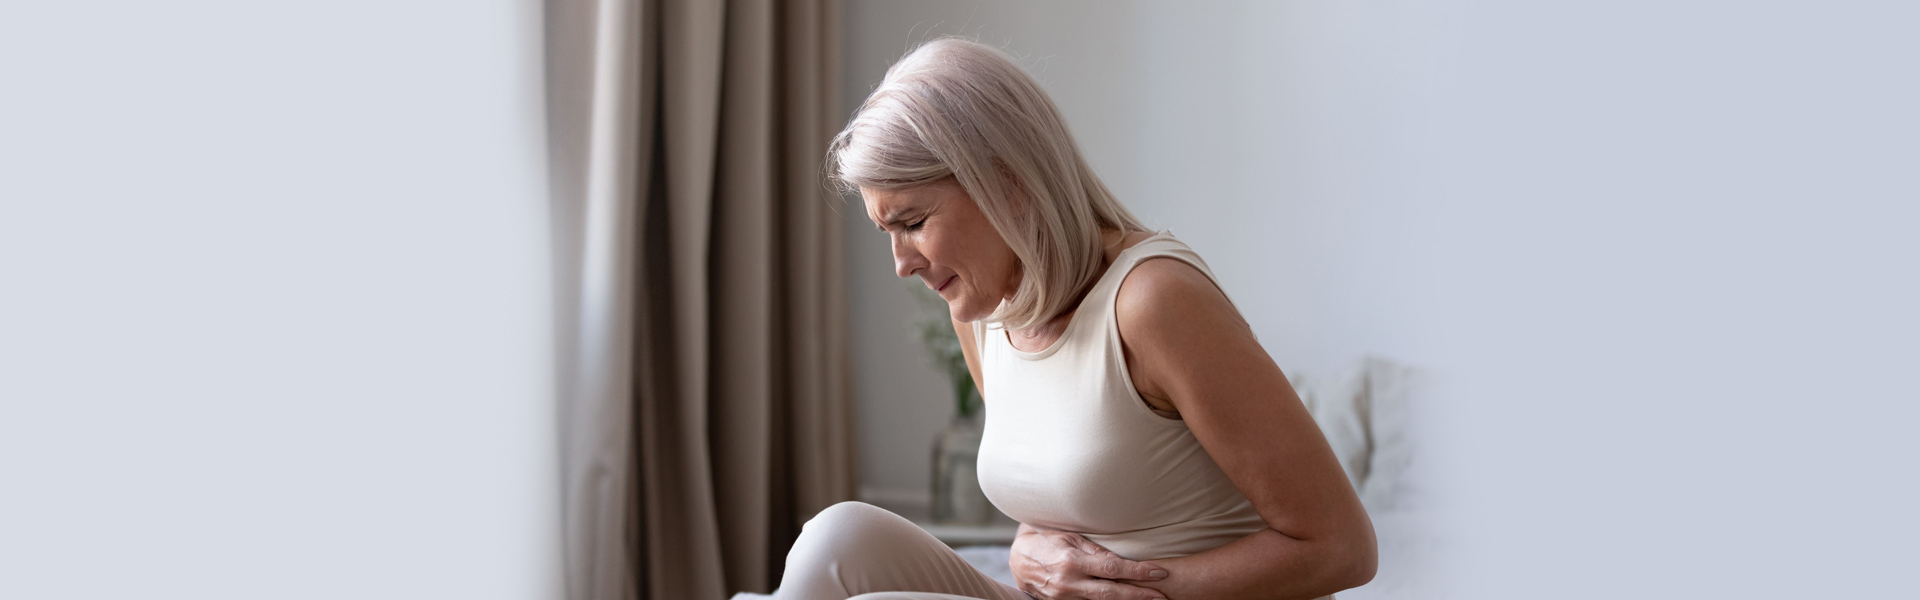 Causes and Treatment of Abdominal Bloating and Pain